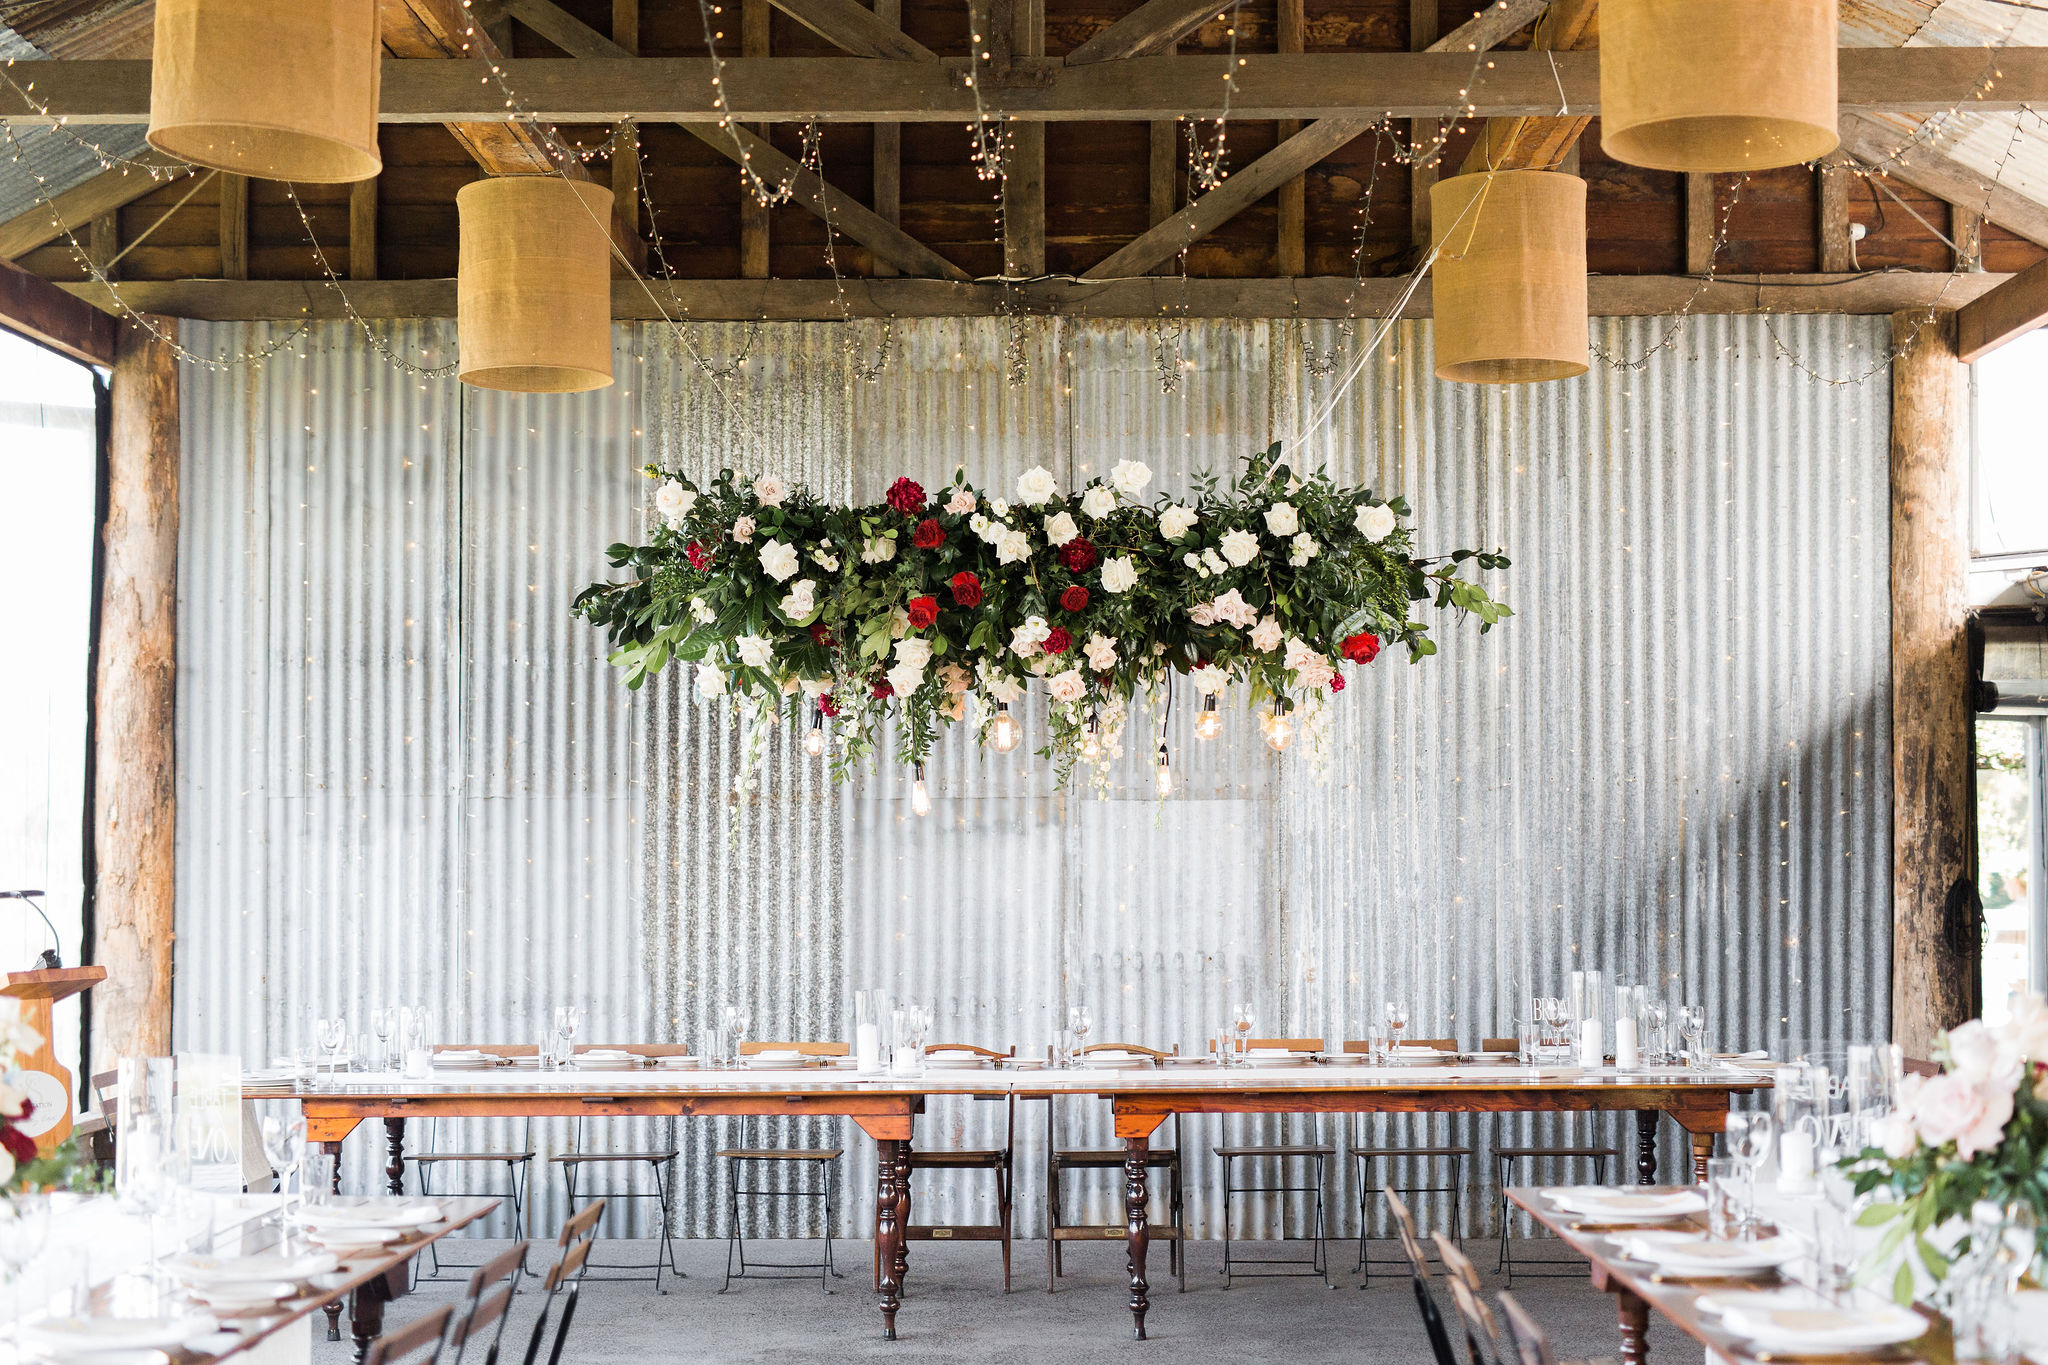 Yandina station modern wedding with ceremony on the viewing deck